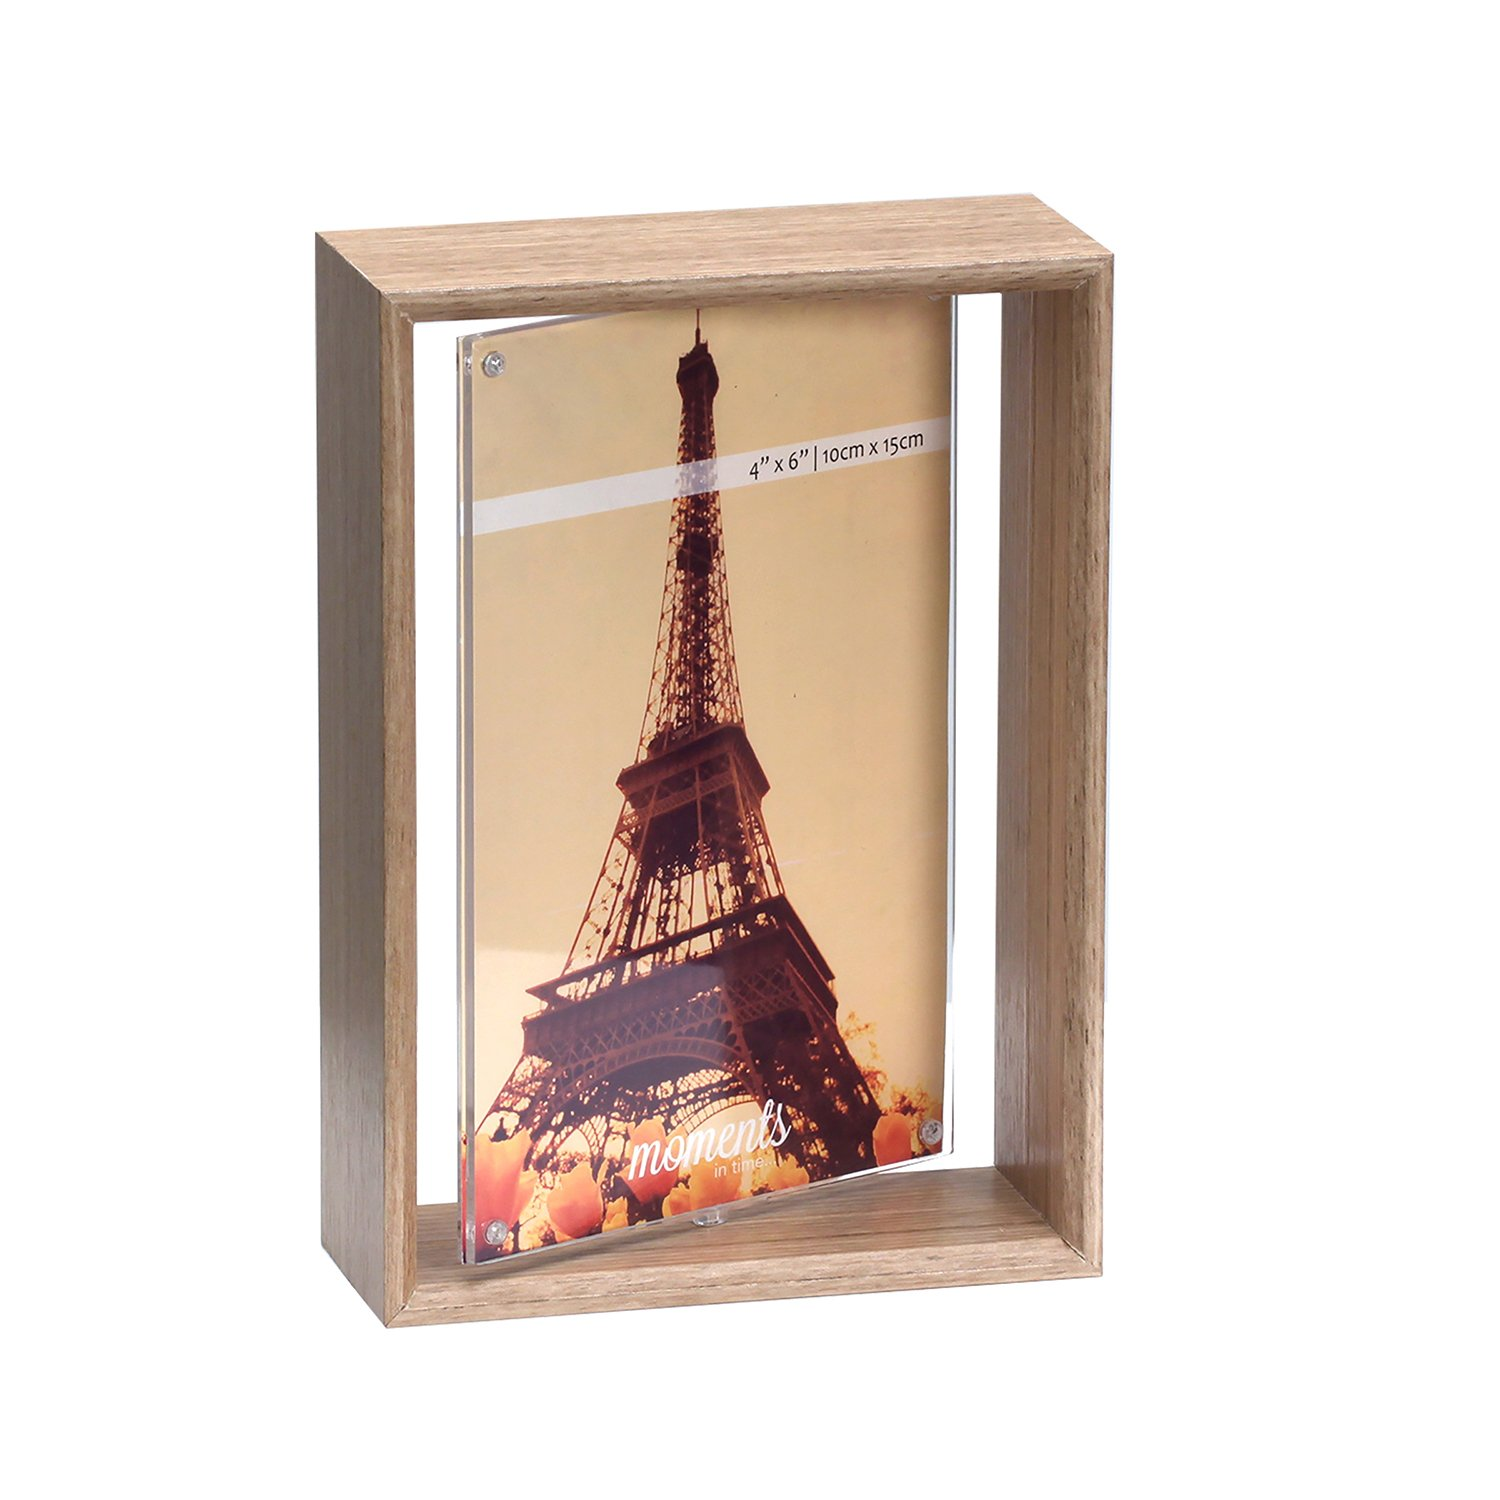 Unique 4x6 Rotating 2-Sided Spinner Wood Photo Frame w/Acrylic Sleeve Picture Display Desktop Decoration MII